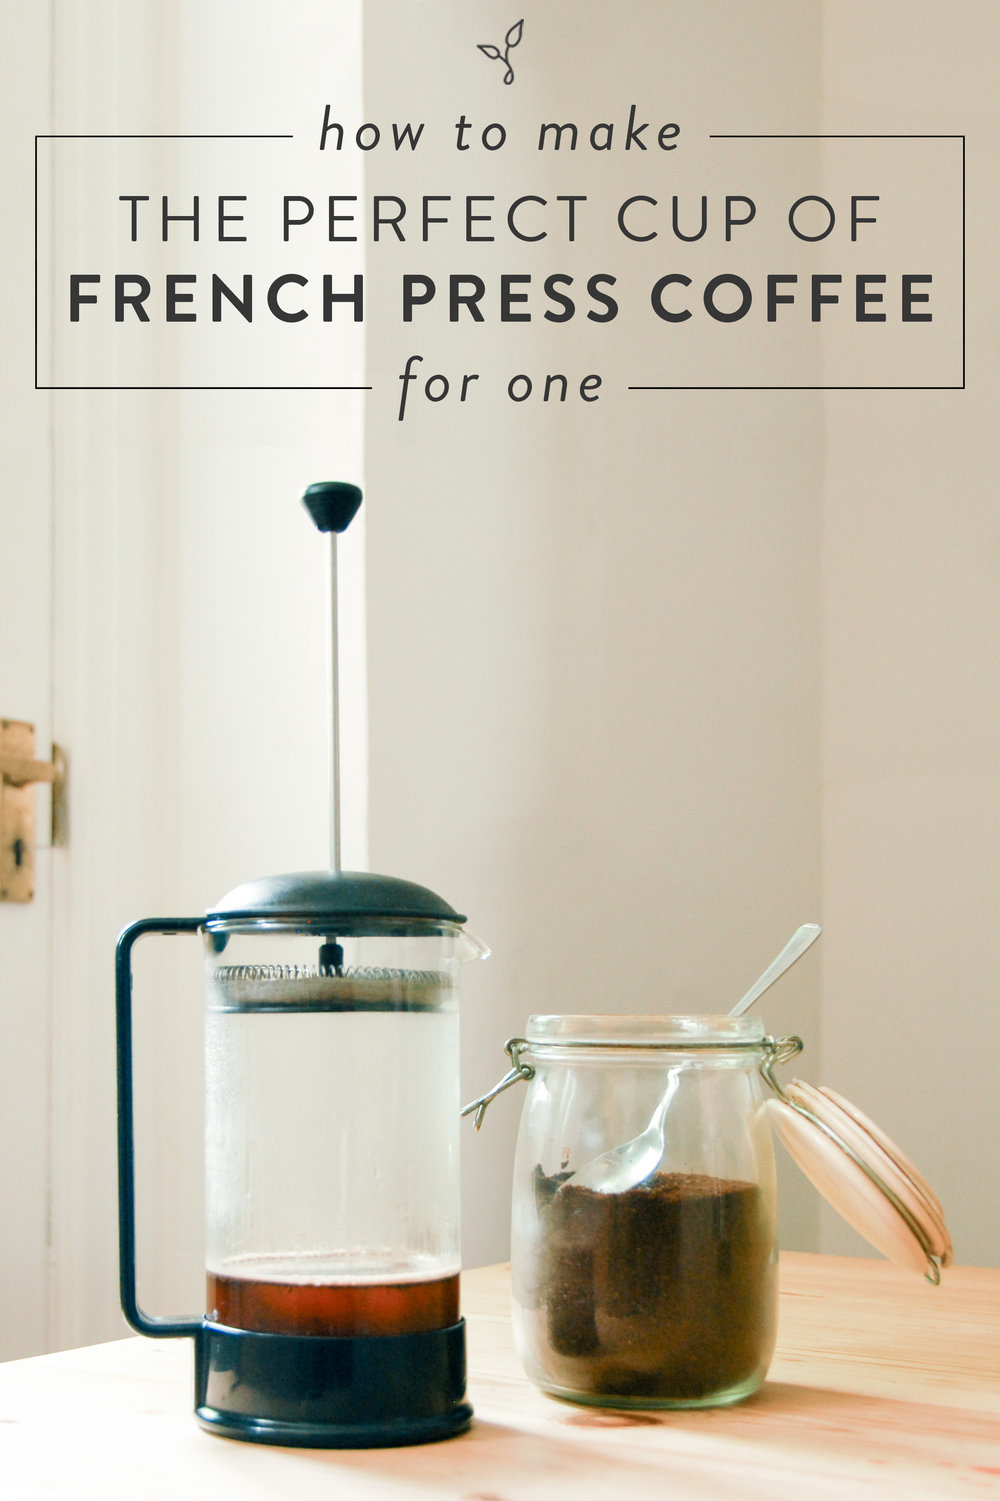 How to make the perfect cup of French press coffee for one